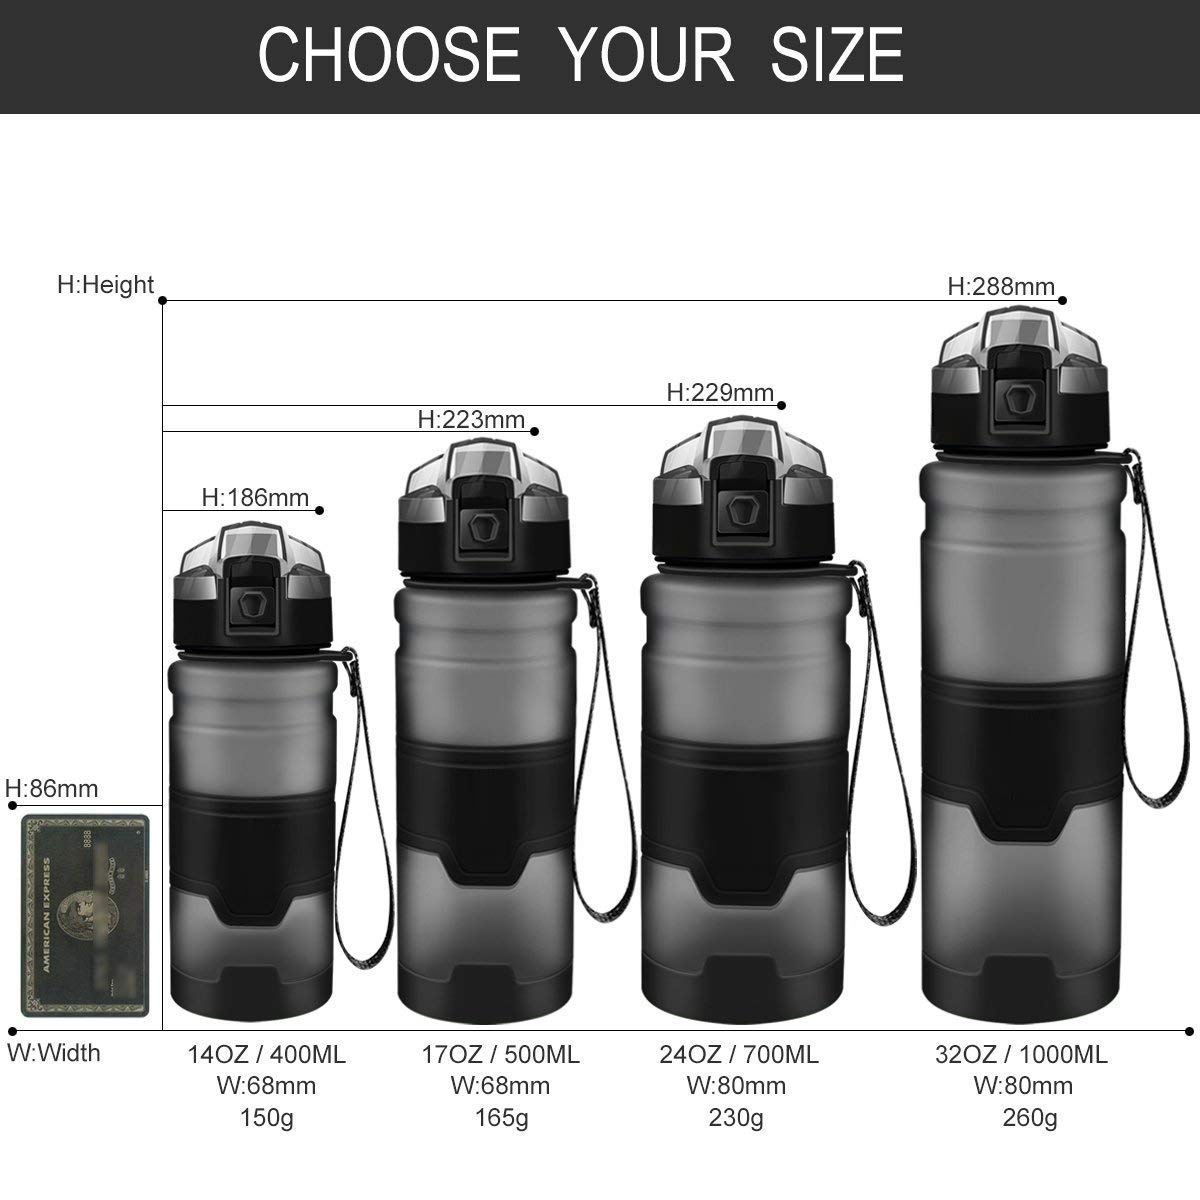 Kang Zhi Yuan BPA Free Leak Proof Plastic Bottles for Outdoors,Camping,Cycling,Fitness,Gym,Yoga Kids//Adults Drink Bottles with Filter,Flip Top,Lockable Lid Open with 1 Click